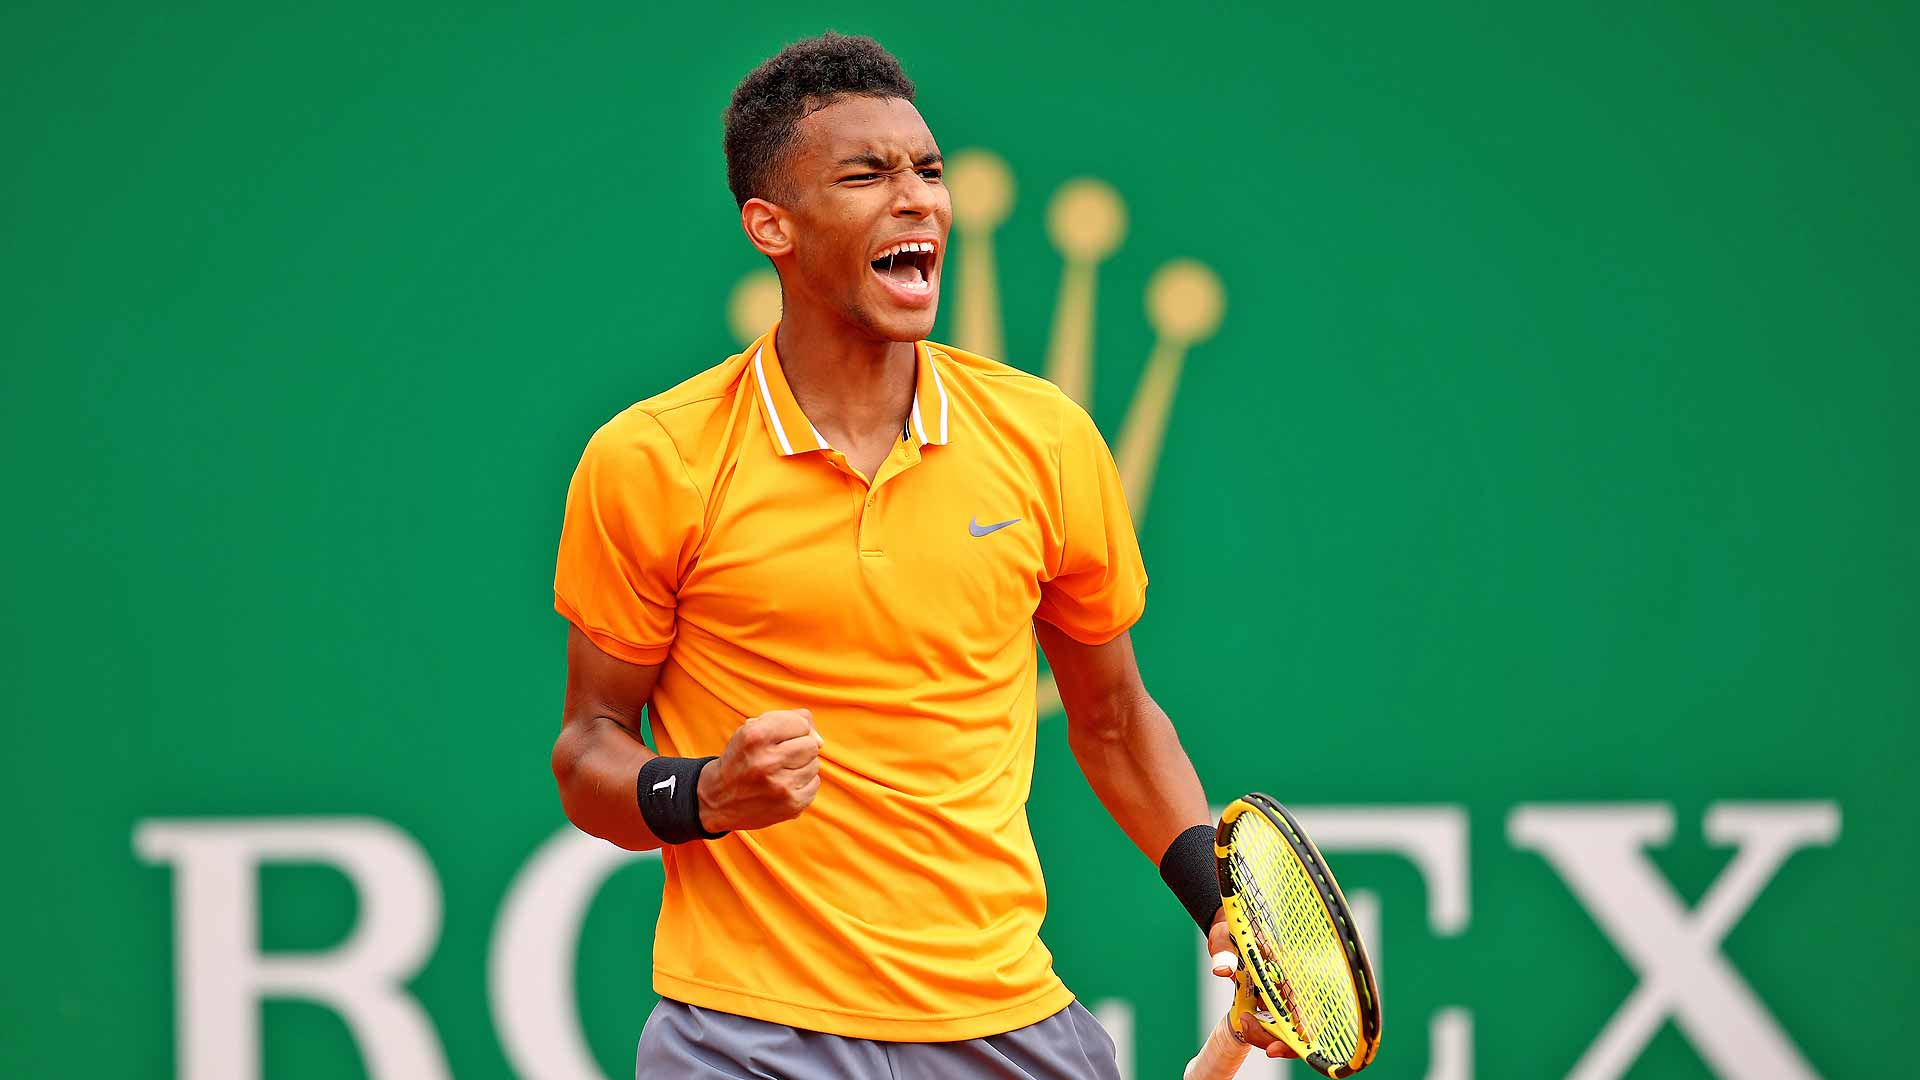 <a href='https://www.atptour.com/en/players/felix-auger-aliassime/ag37/overview'>Felix Auger-Aliassime</a> celebrates a point in Monte-Carlo